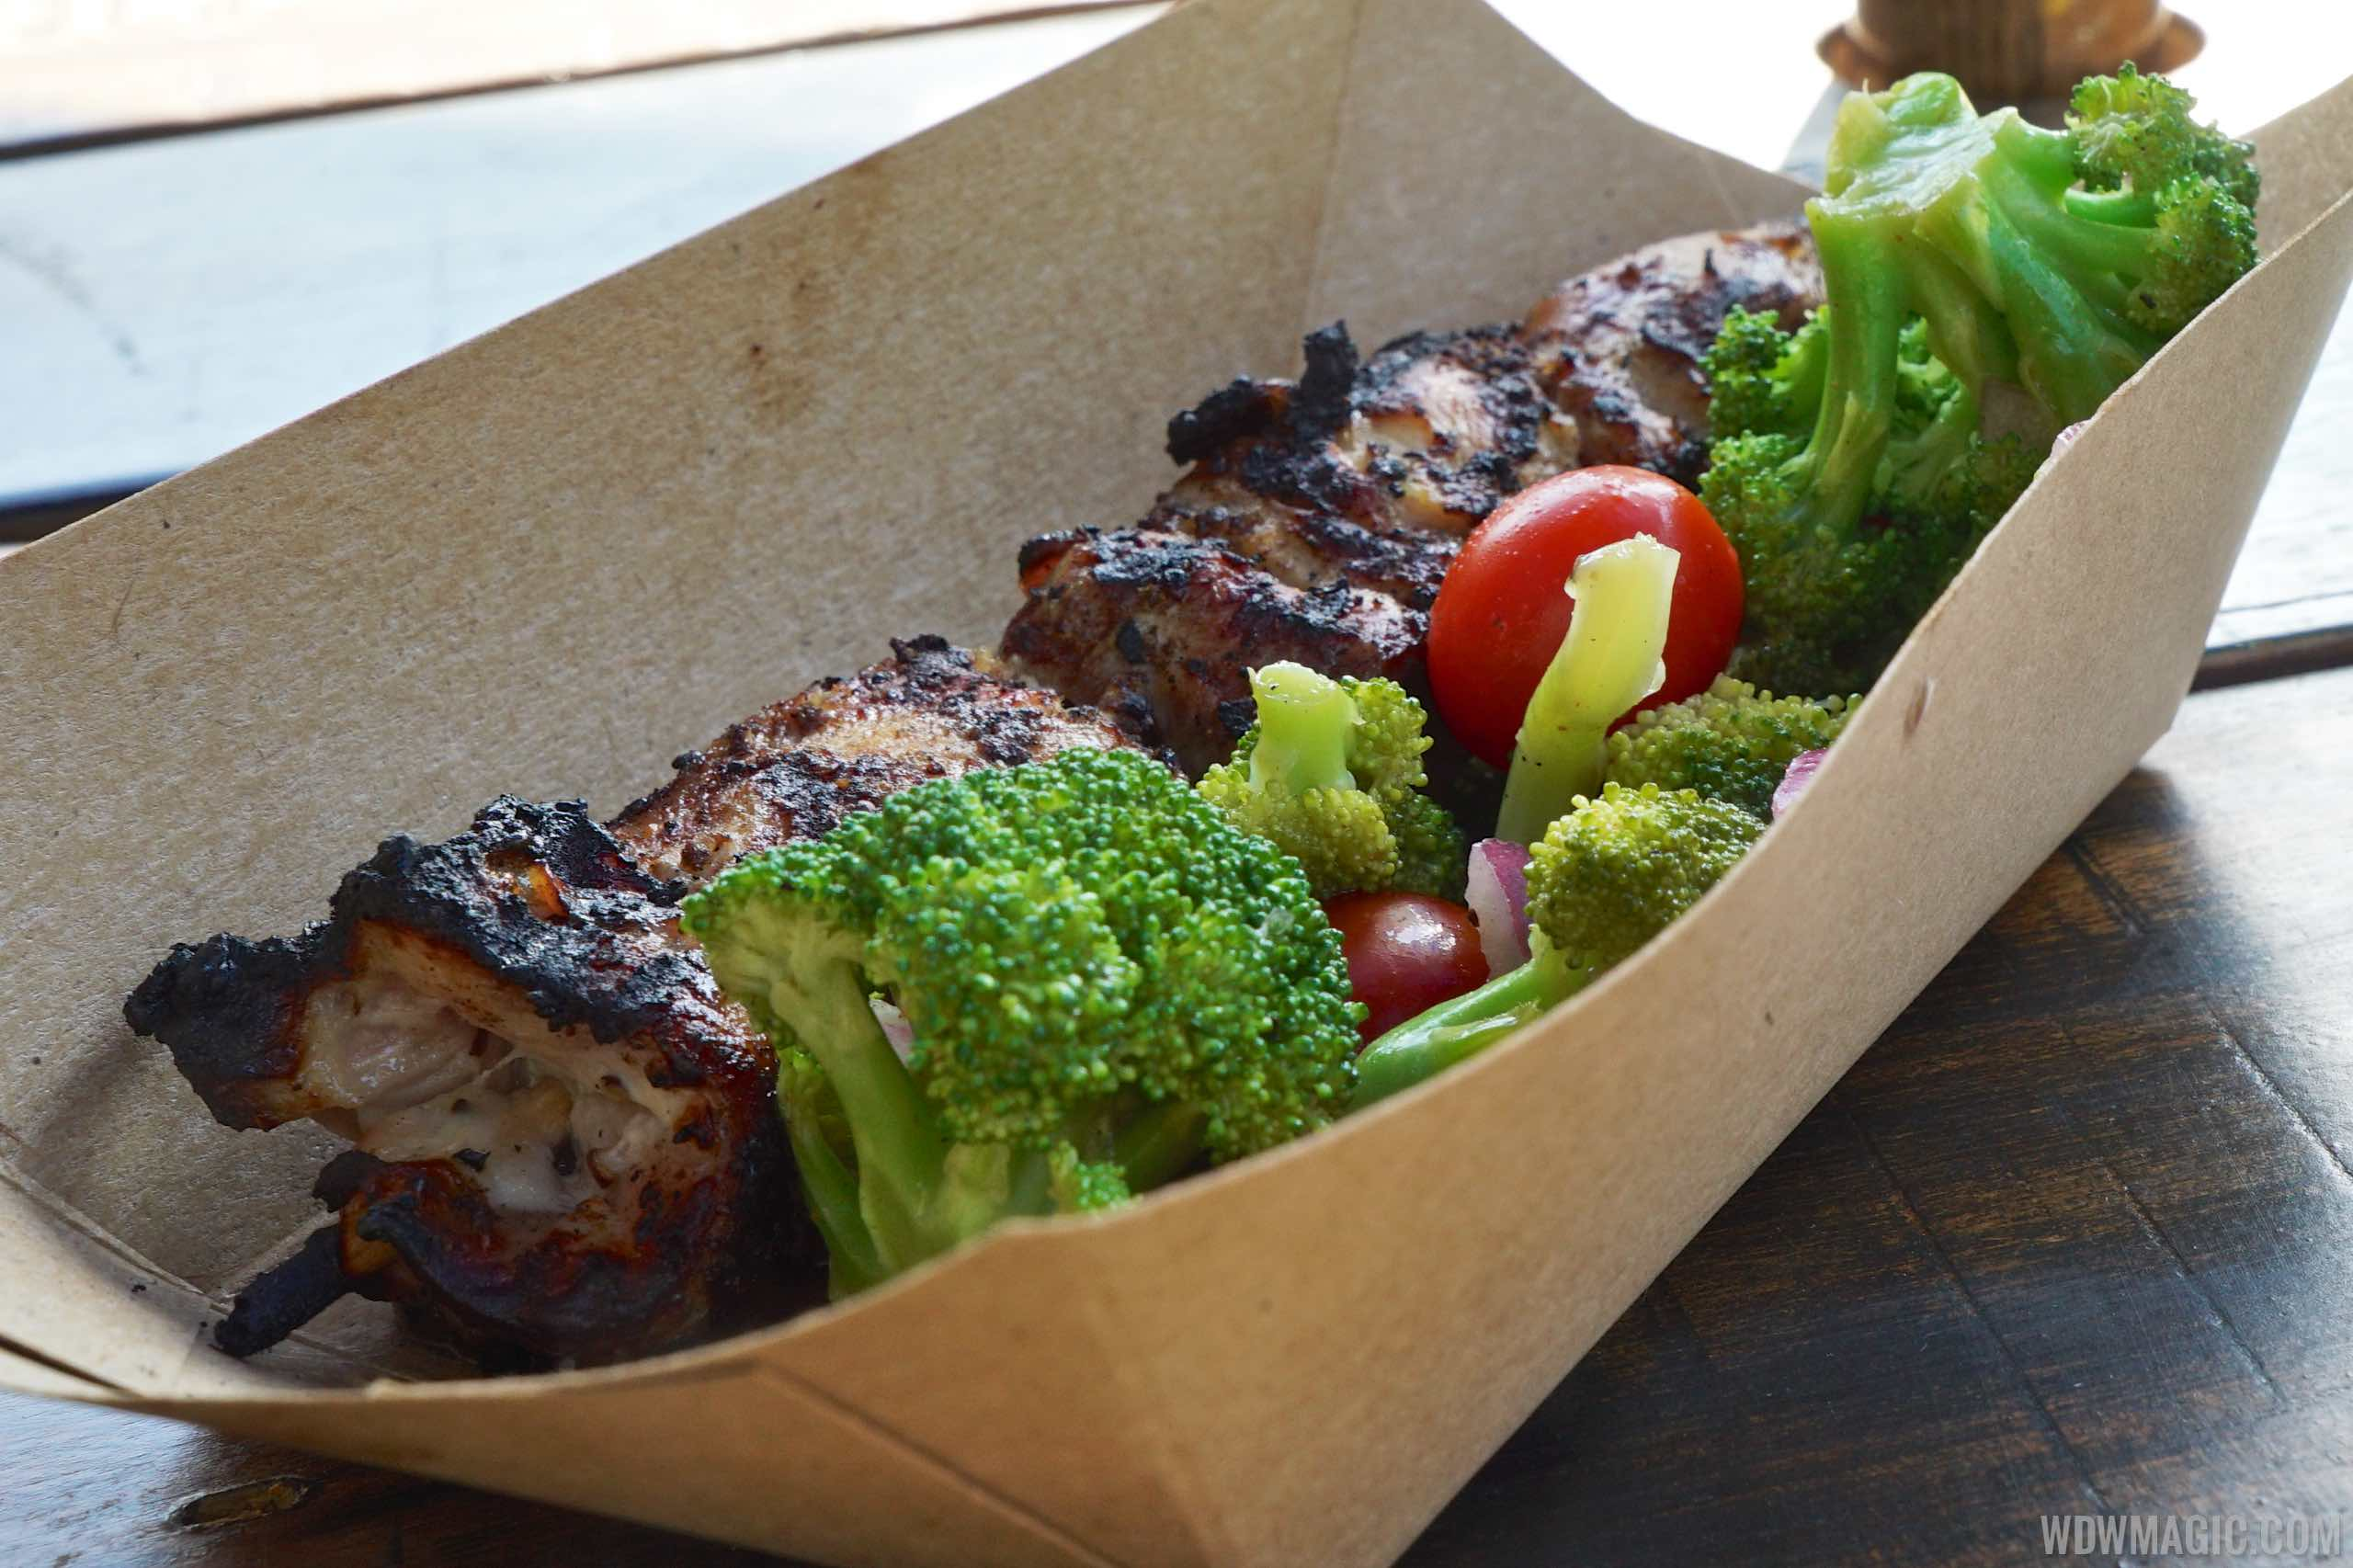 Harambe Market Food - Chicken Skewer with broccoli and tomato salad $8.99